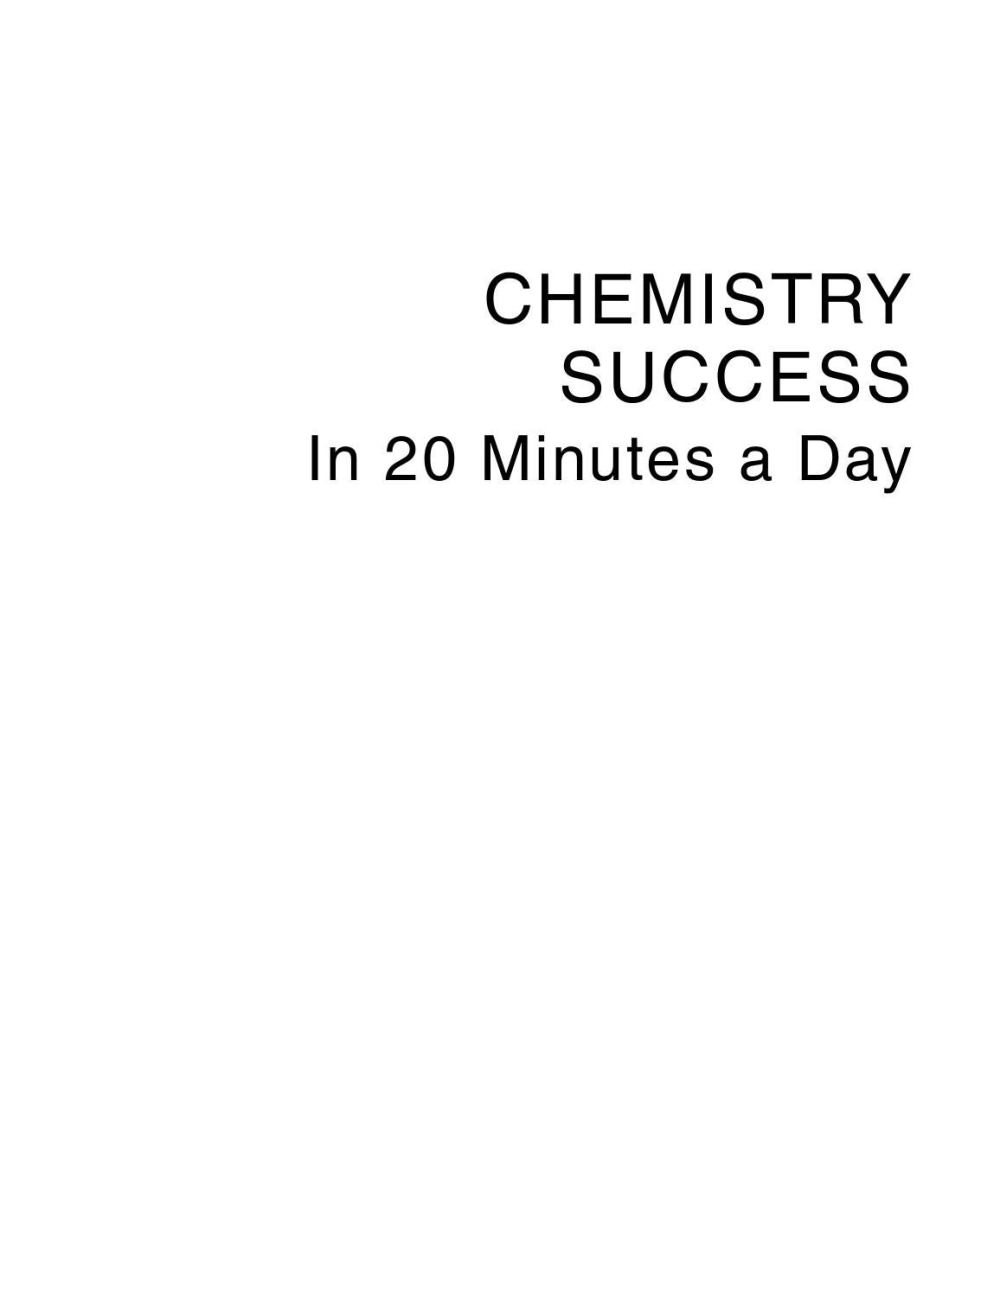 medium resolution of scribd download com chemistry success in 20 minutes a day